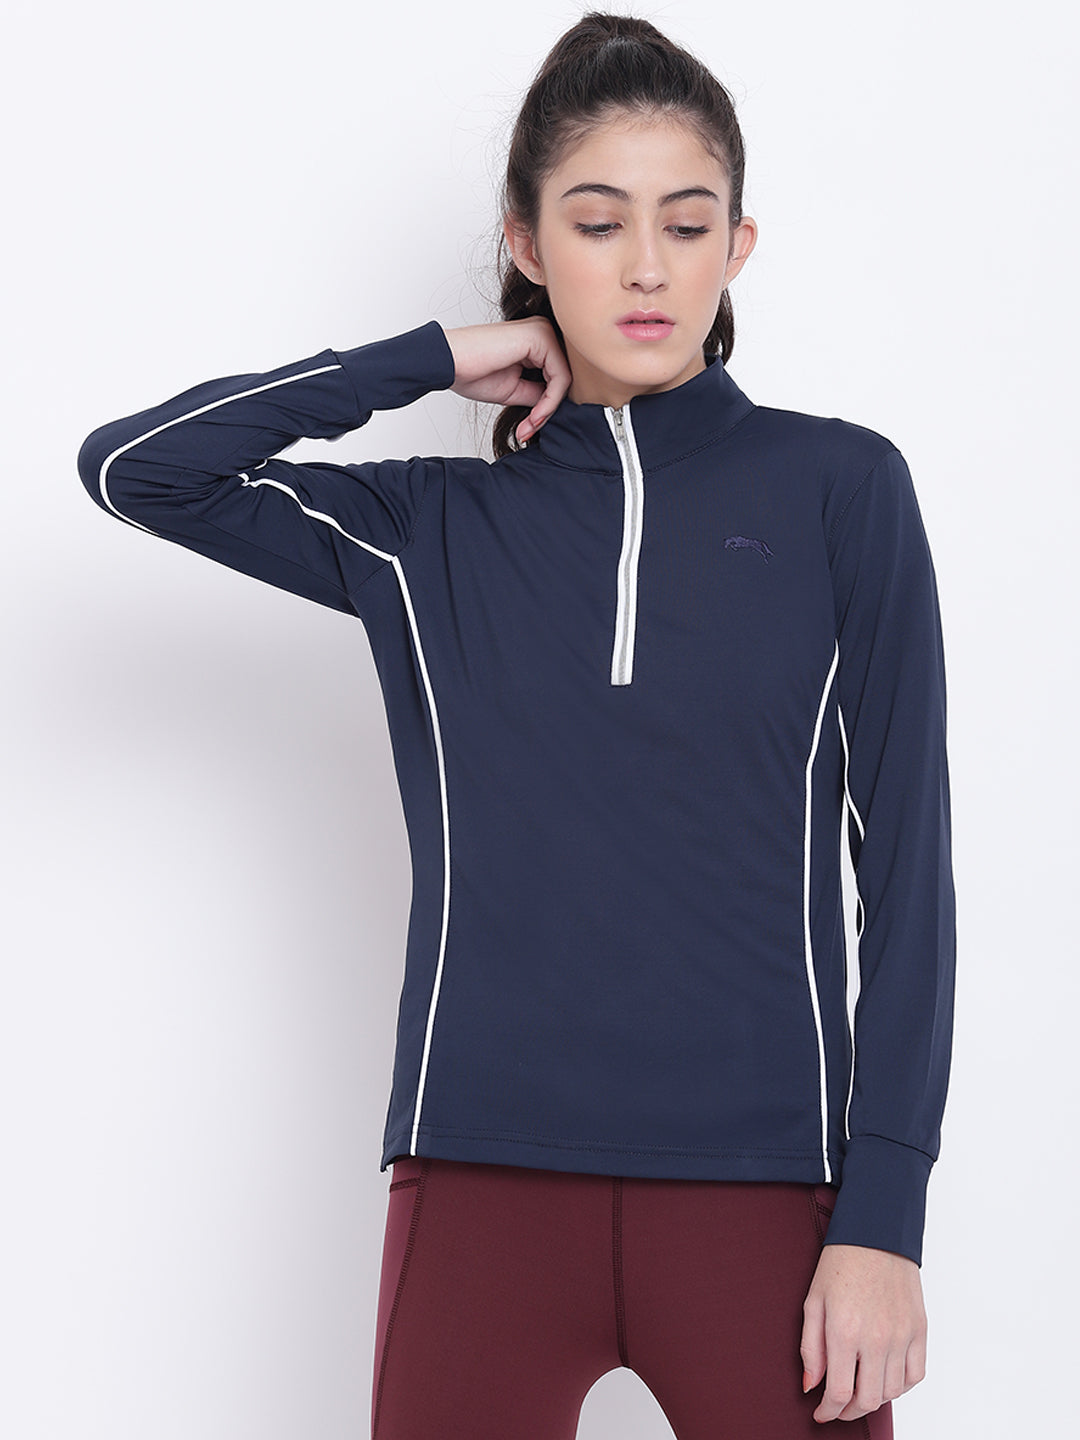 Women Navy Blue Casual T-shirt - JUMP USA